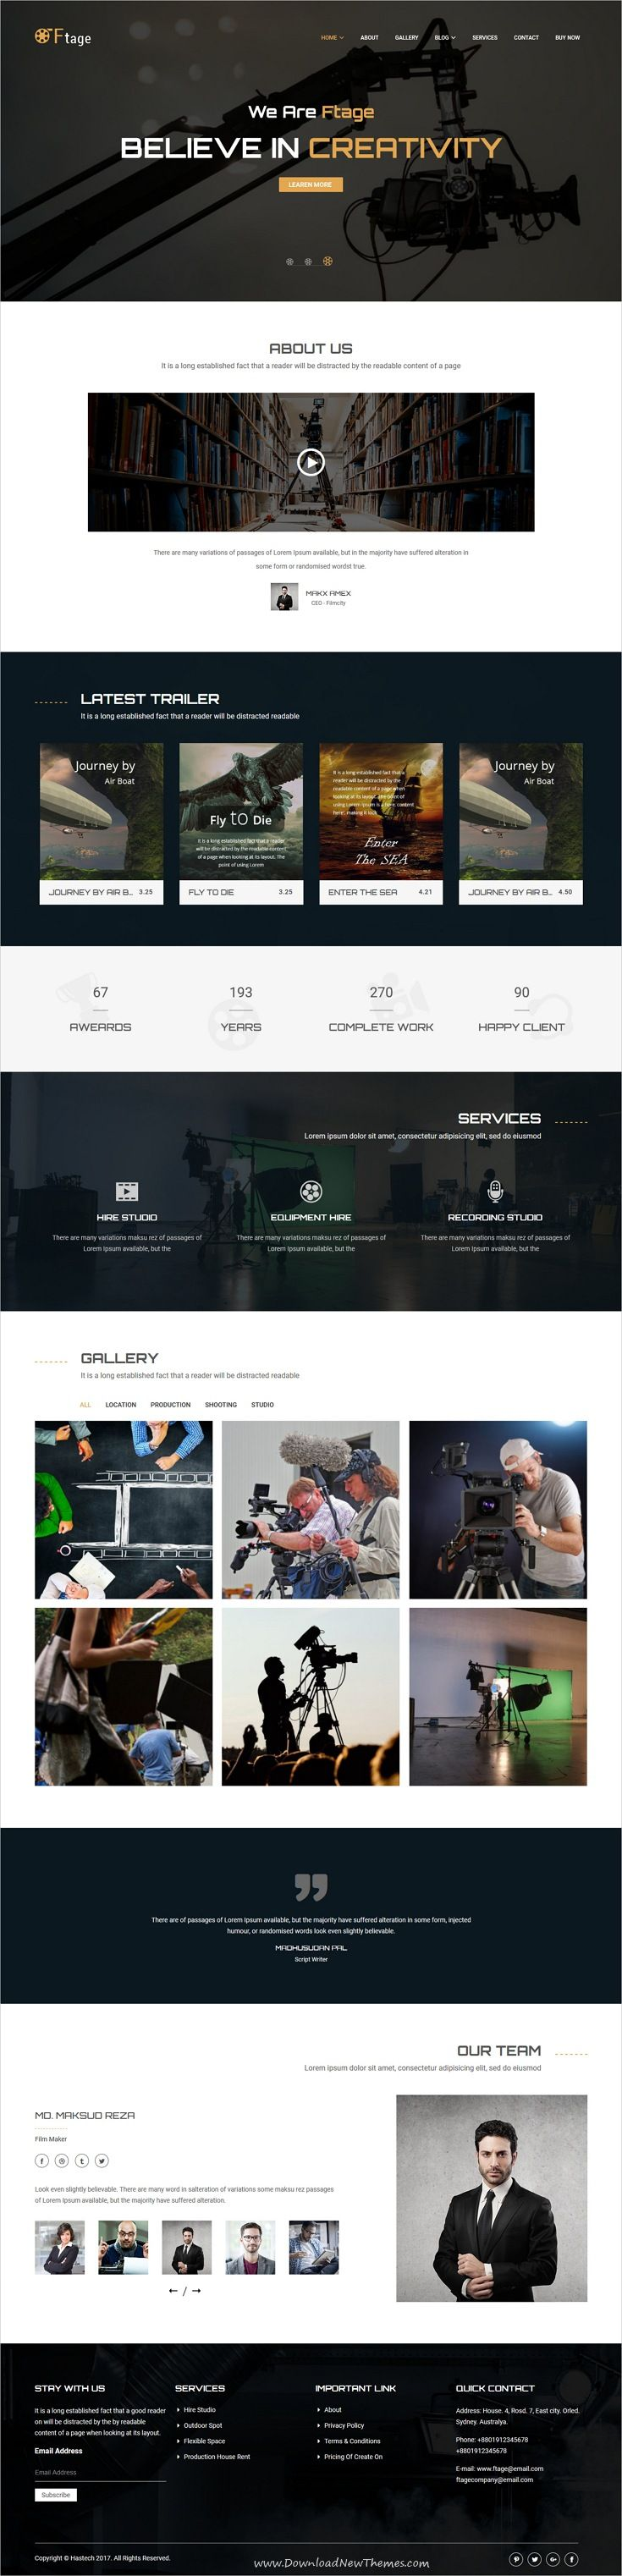 Ftage is clean and modern design 4in1 responsive wordpress theme ftage is clean and modern design 4in1 responsive wordpress theme for filmmakers film studios movie campaigns video production and marketing company maxwellsz